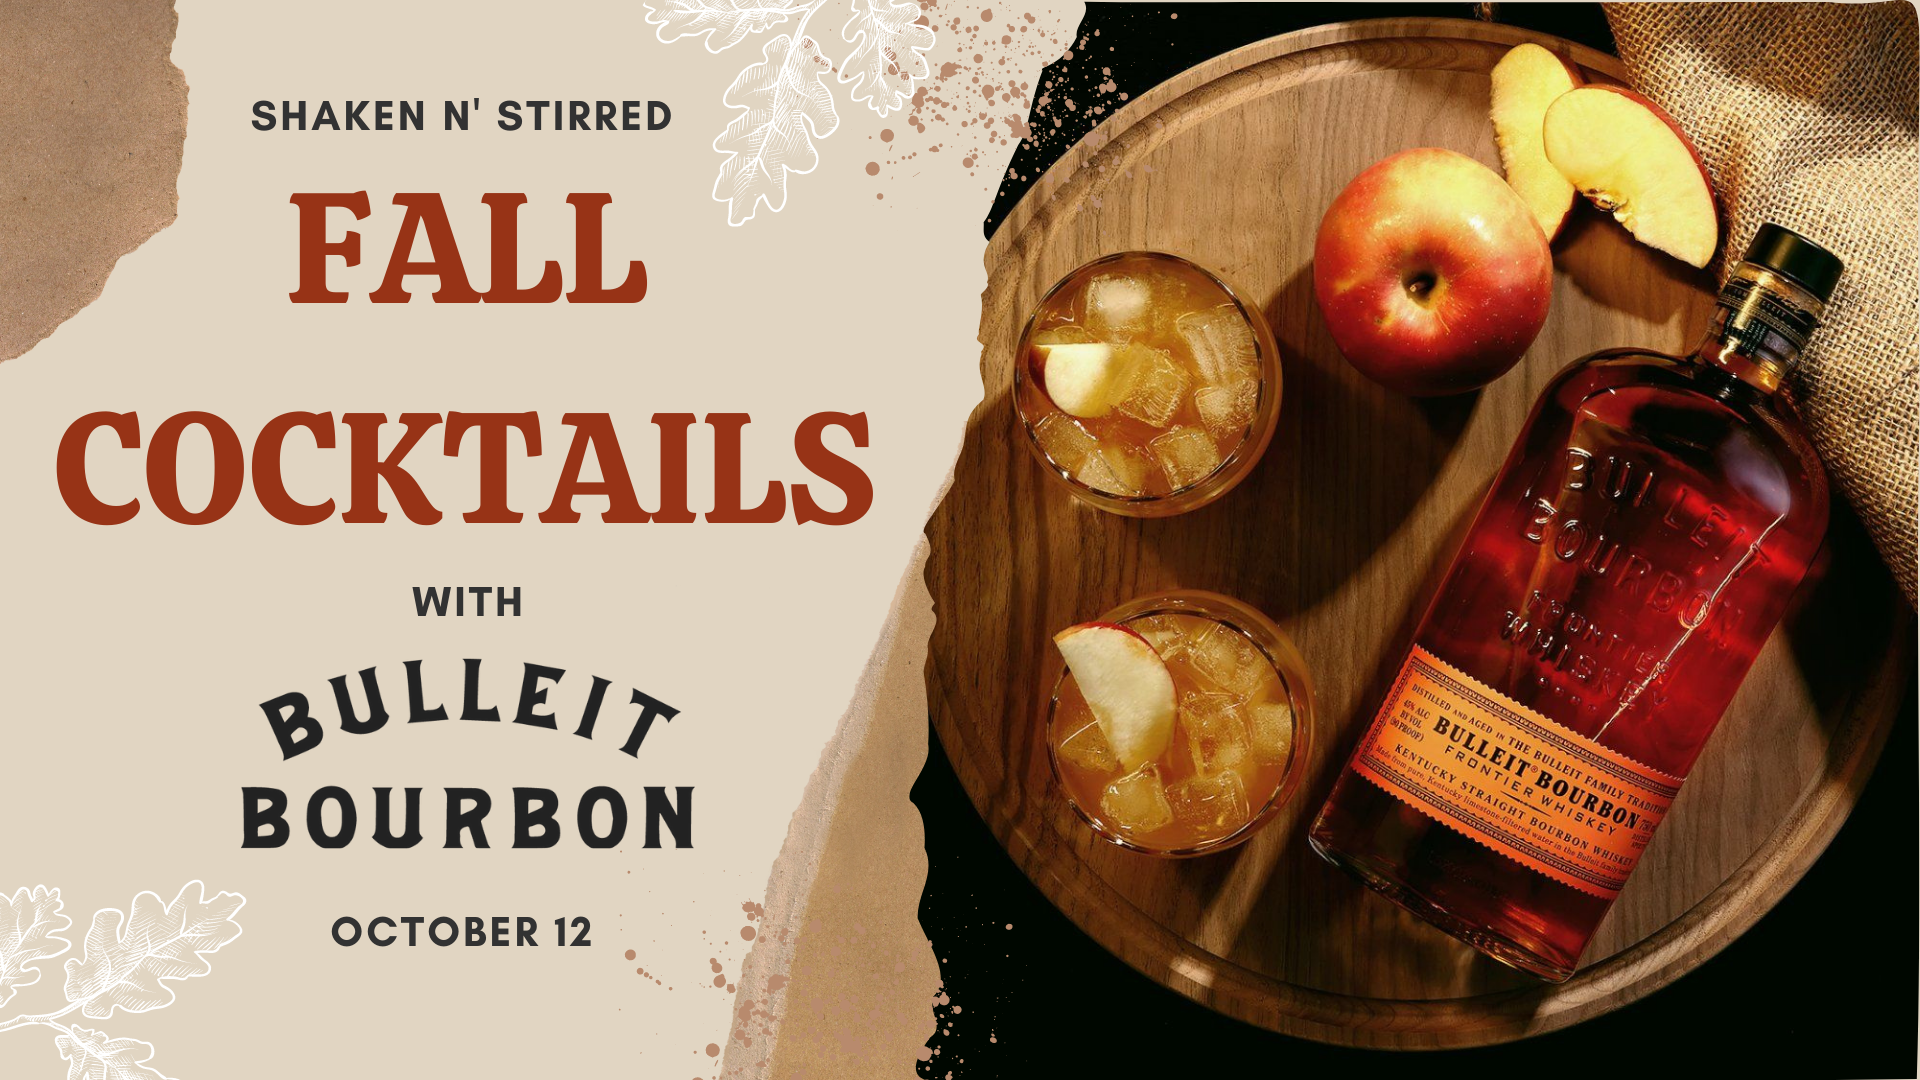 Promo image of Shaken N' Stirred: Fall Cocktails with Bulleit Bourbon